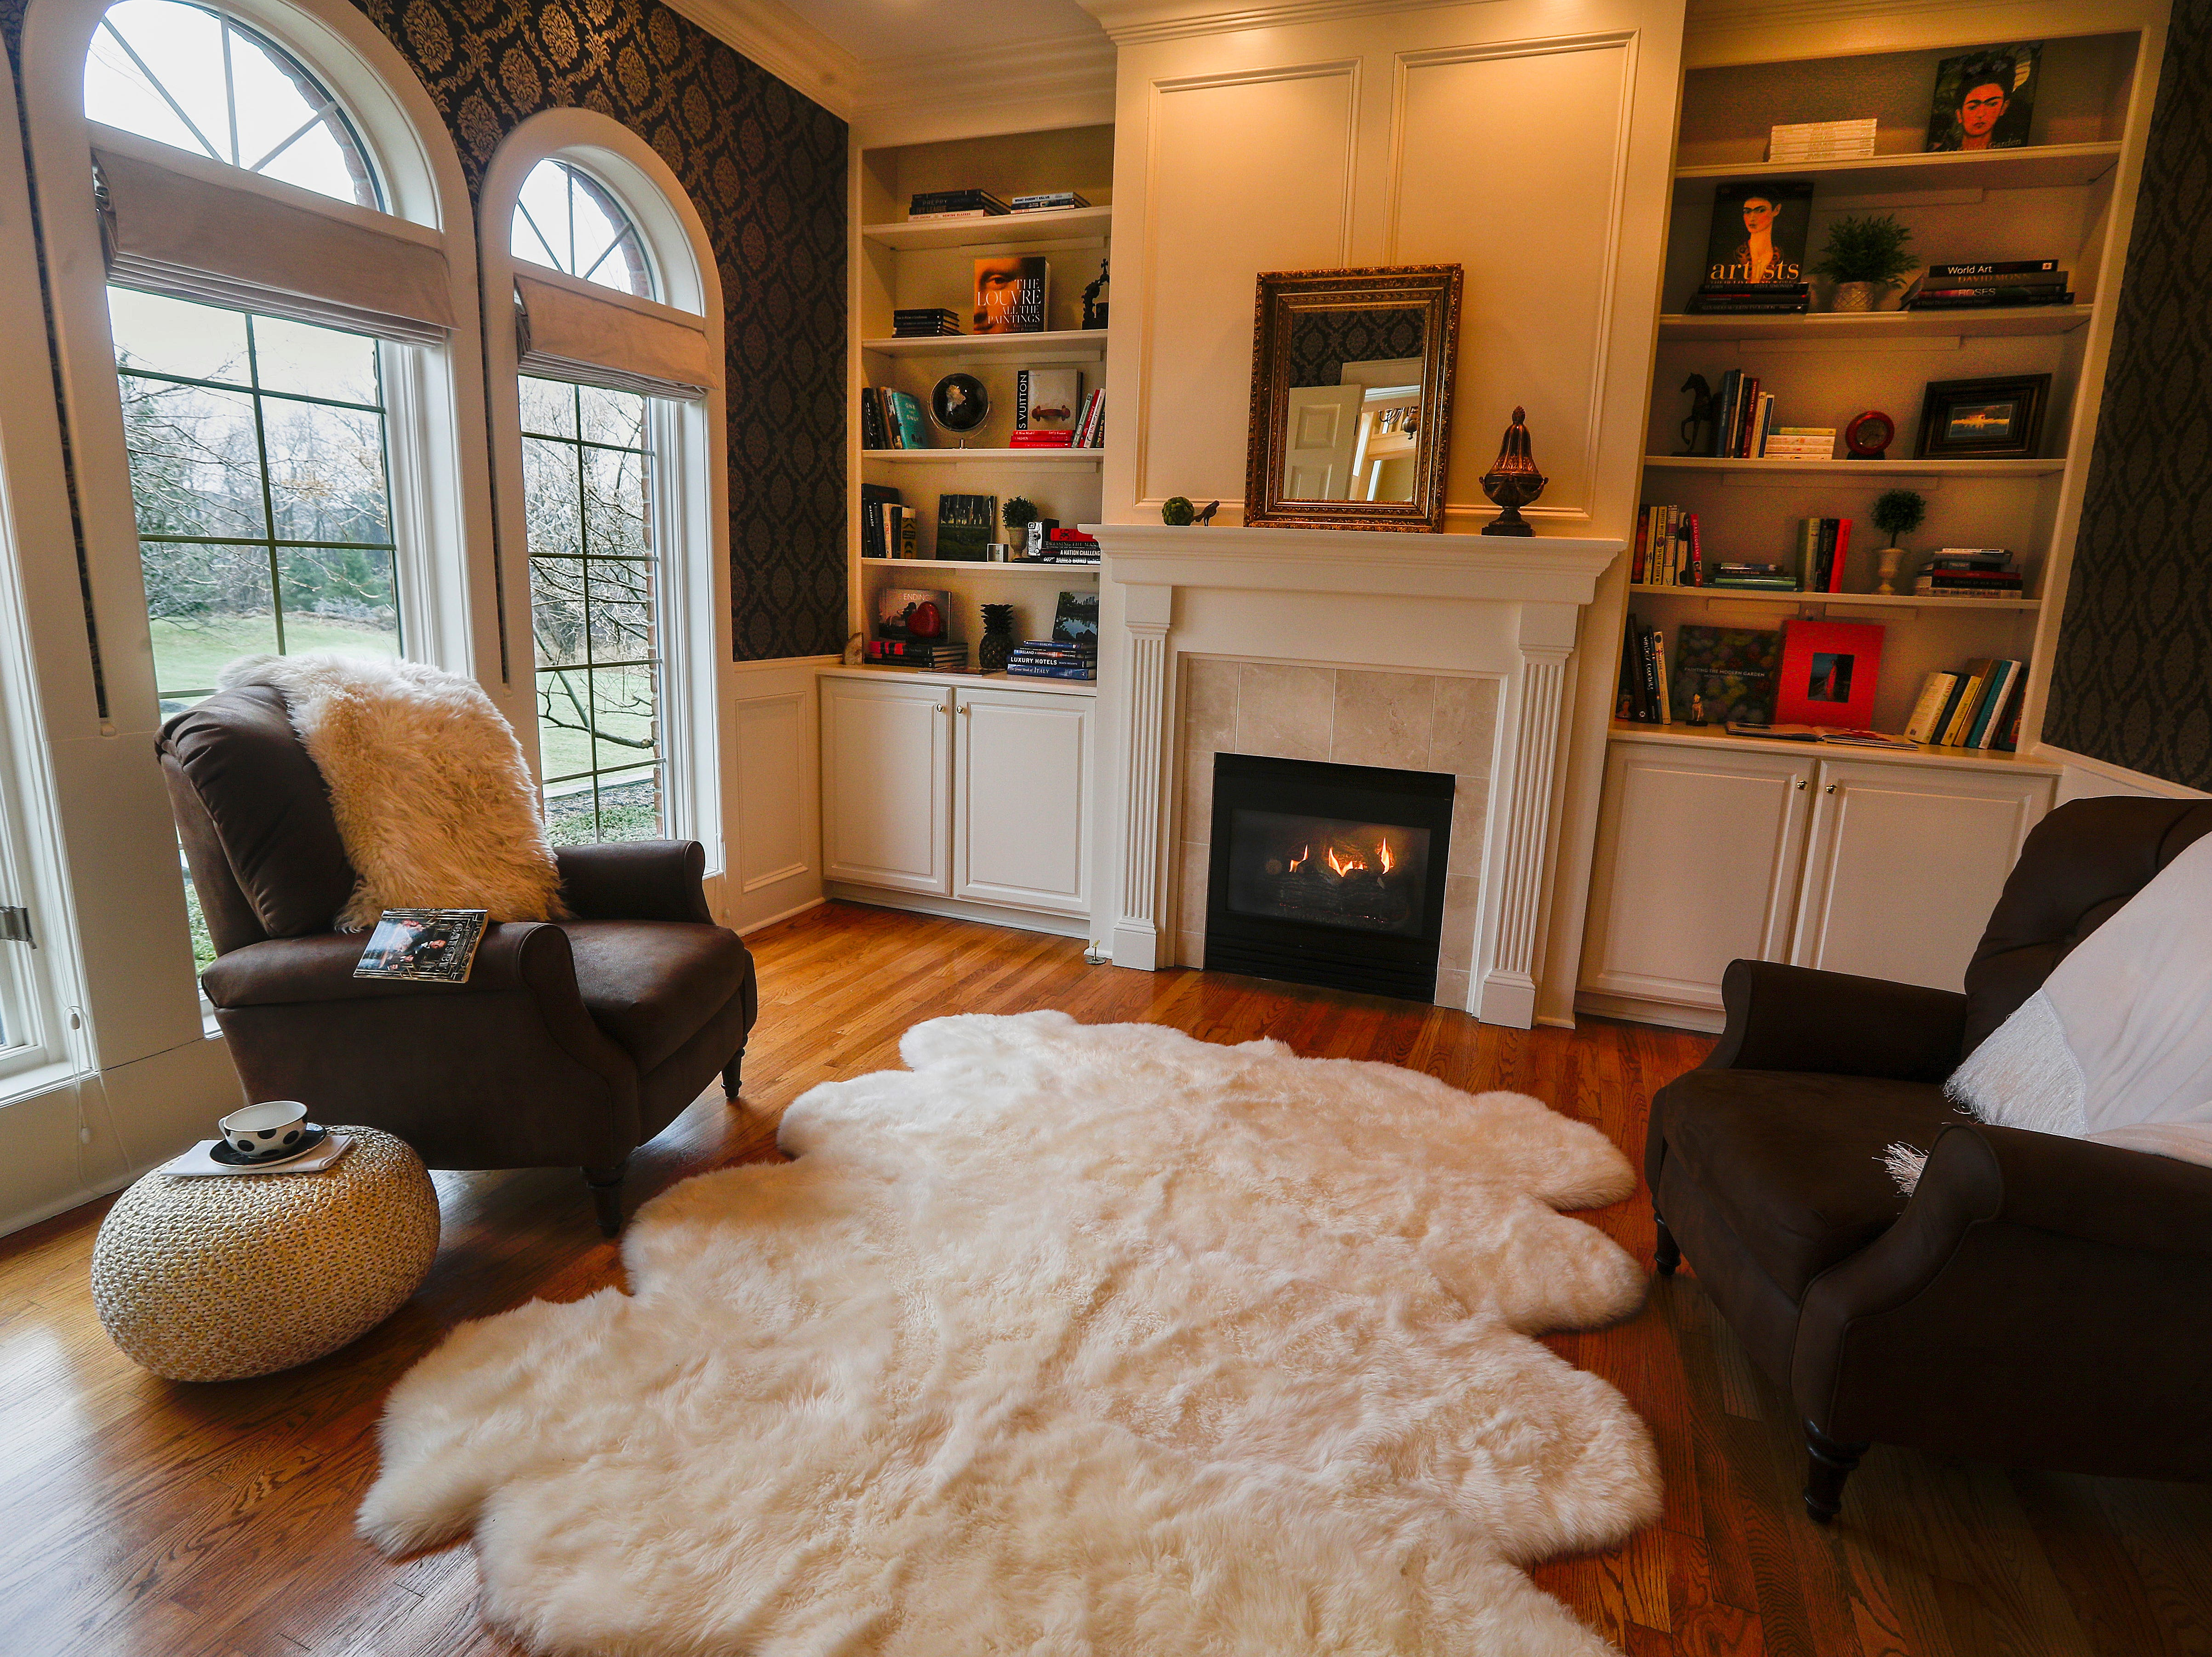 A cozy den with fireplace and bookcases.